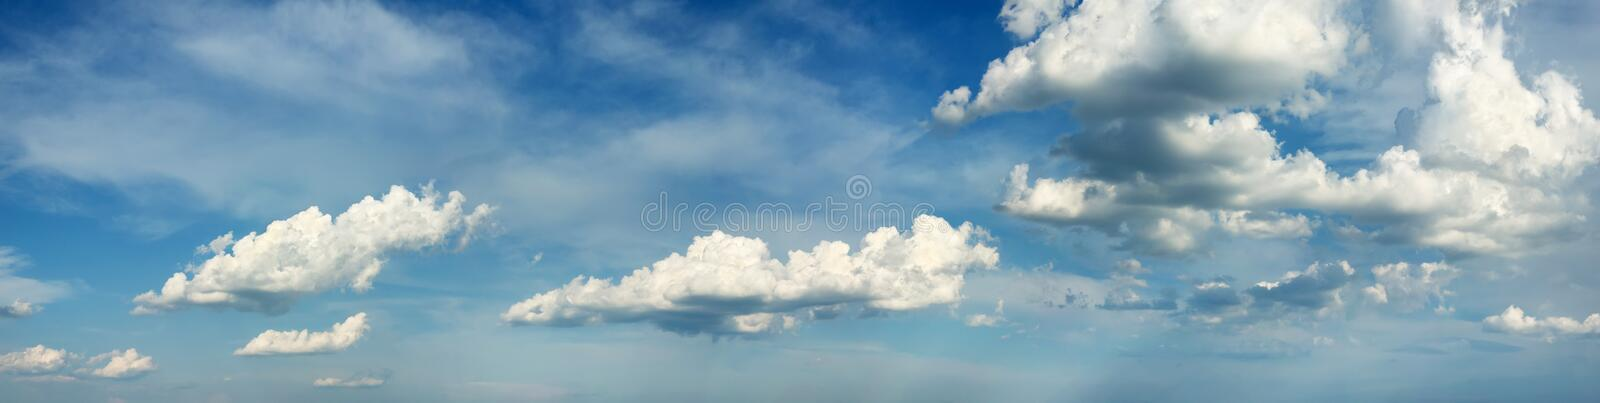 cloudscape obraz royalty free